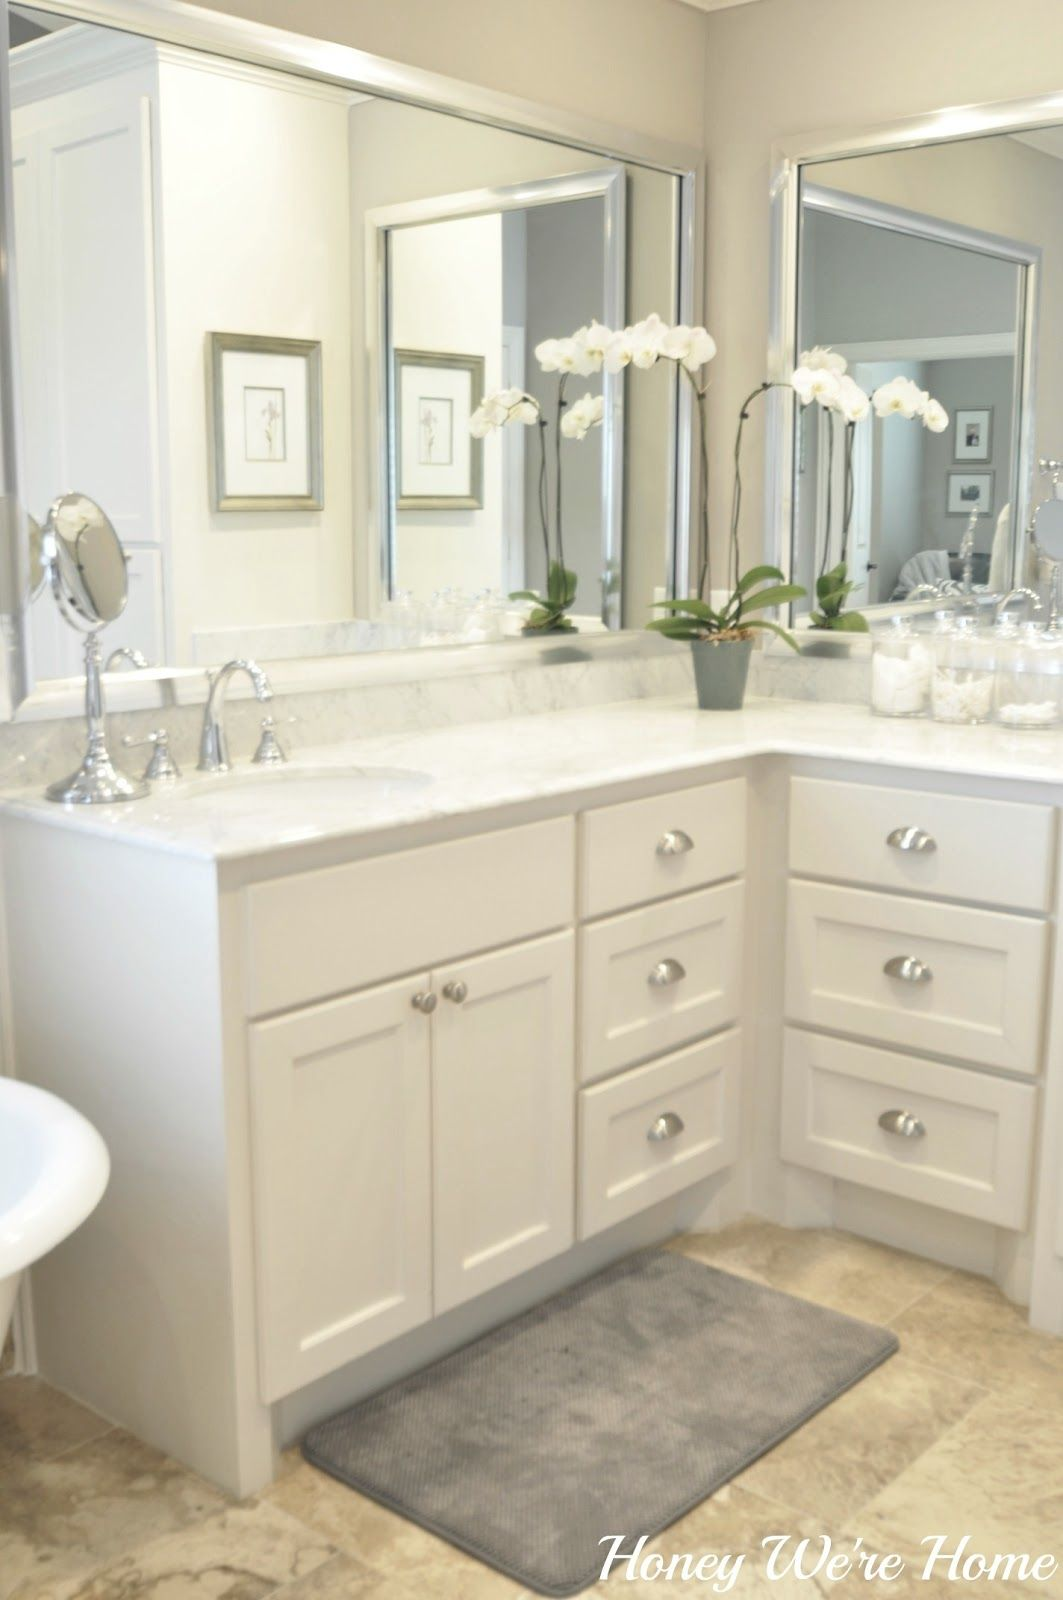 honey we're home master bath Sherwin Williams Anew Gray